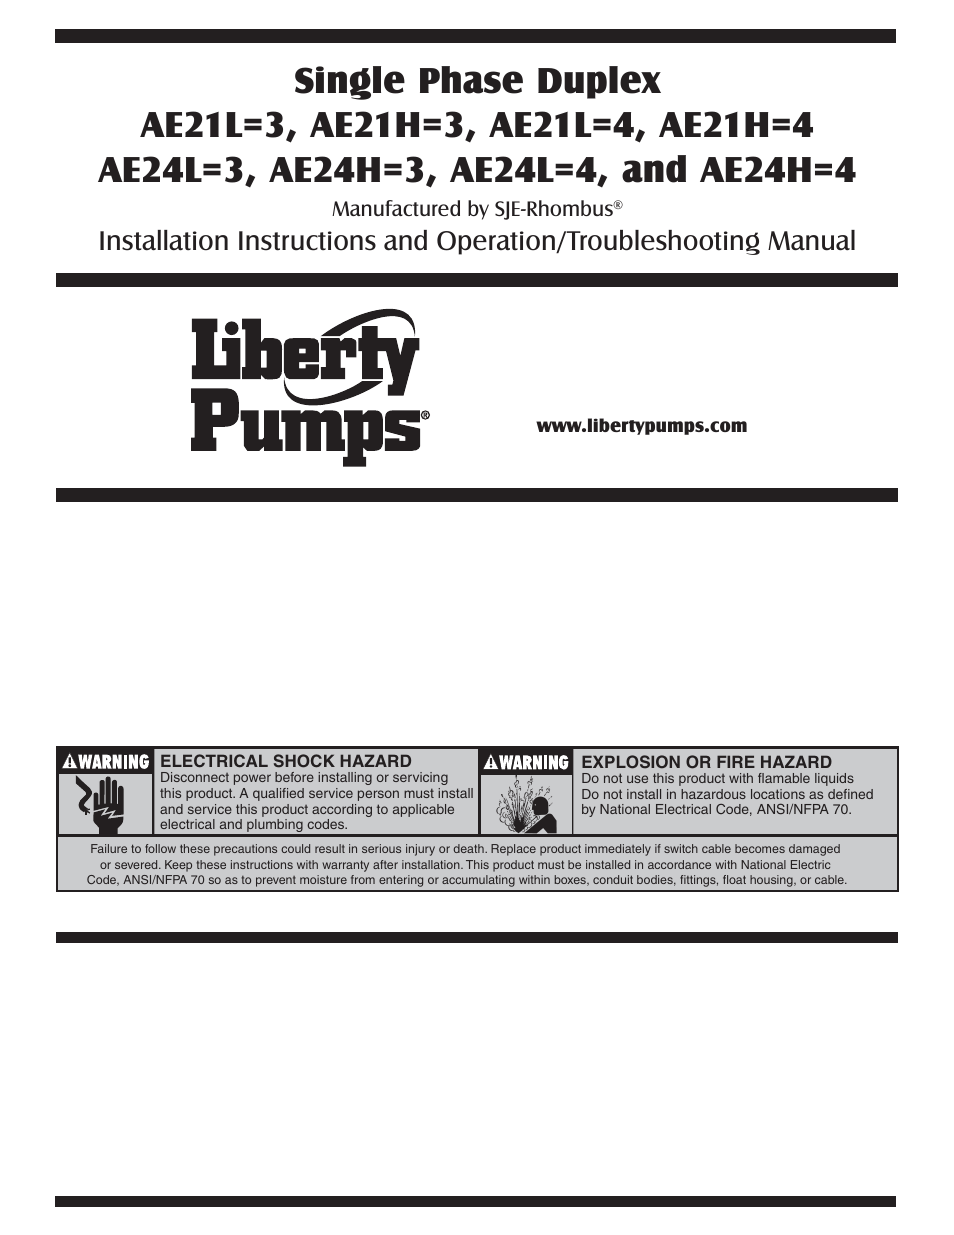 Liberty Pumps AESeries User Manual 12 pages